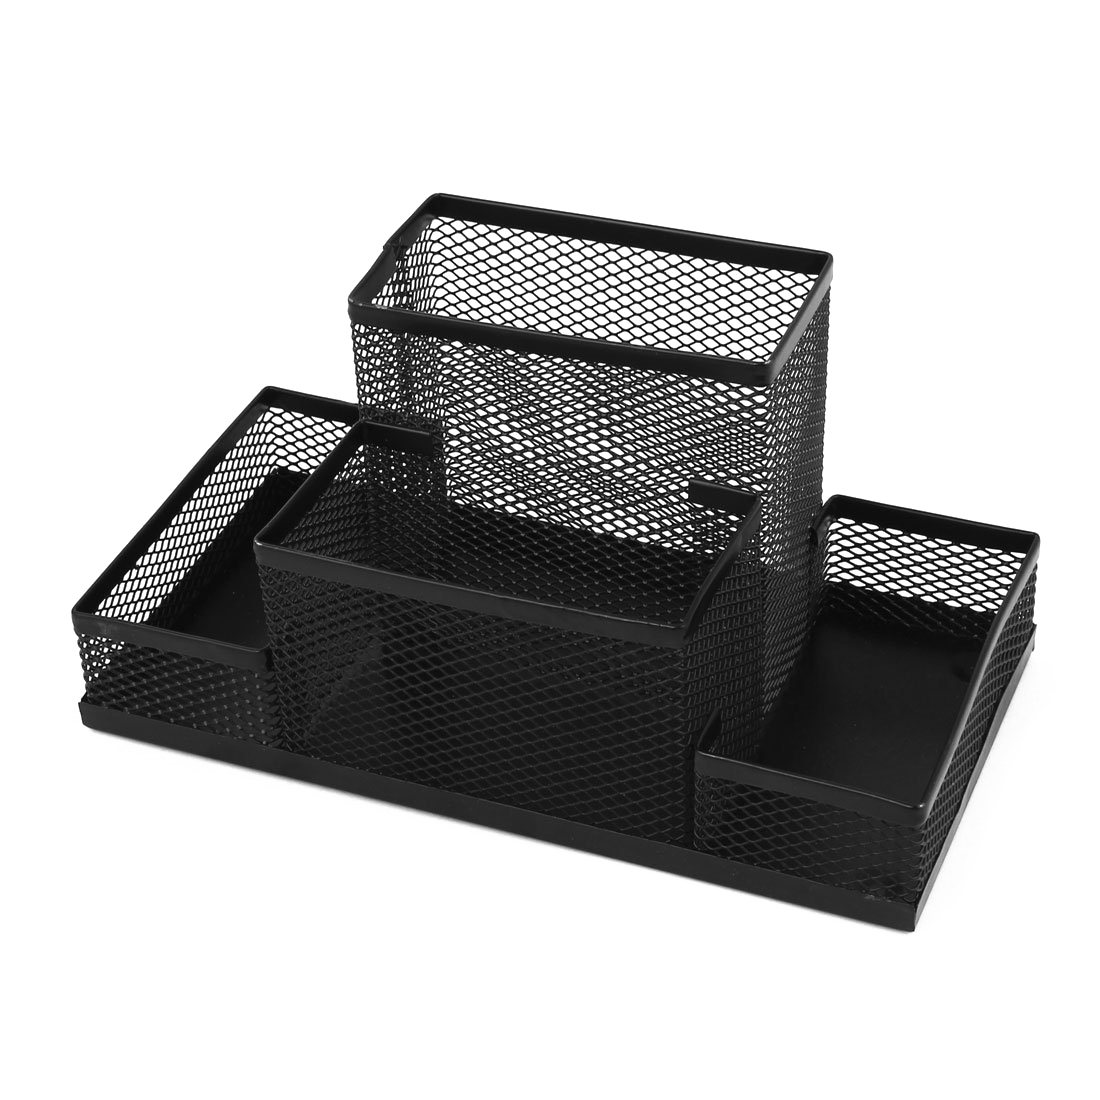 Multifunctional Black pen holder desk organizer Metal Desktop Storage Box Mesh Style Pen Pencil Ruler Holder cute cat pen holders multifunctional storage wooden cosmetic storage box memo box penholder gift office organizer school supplie